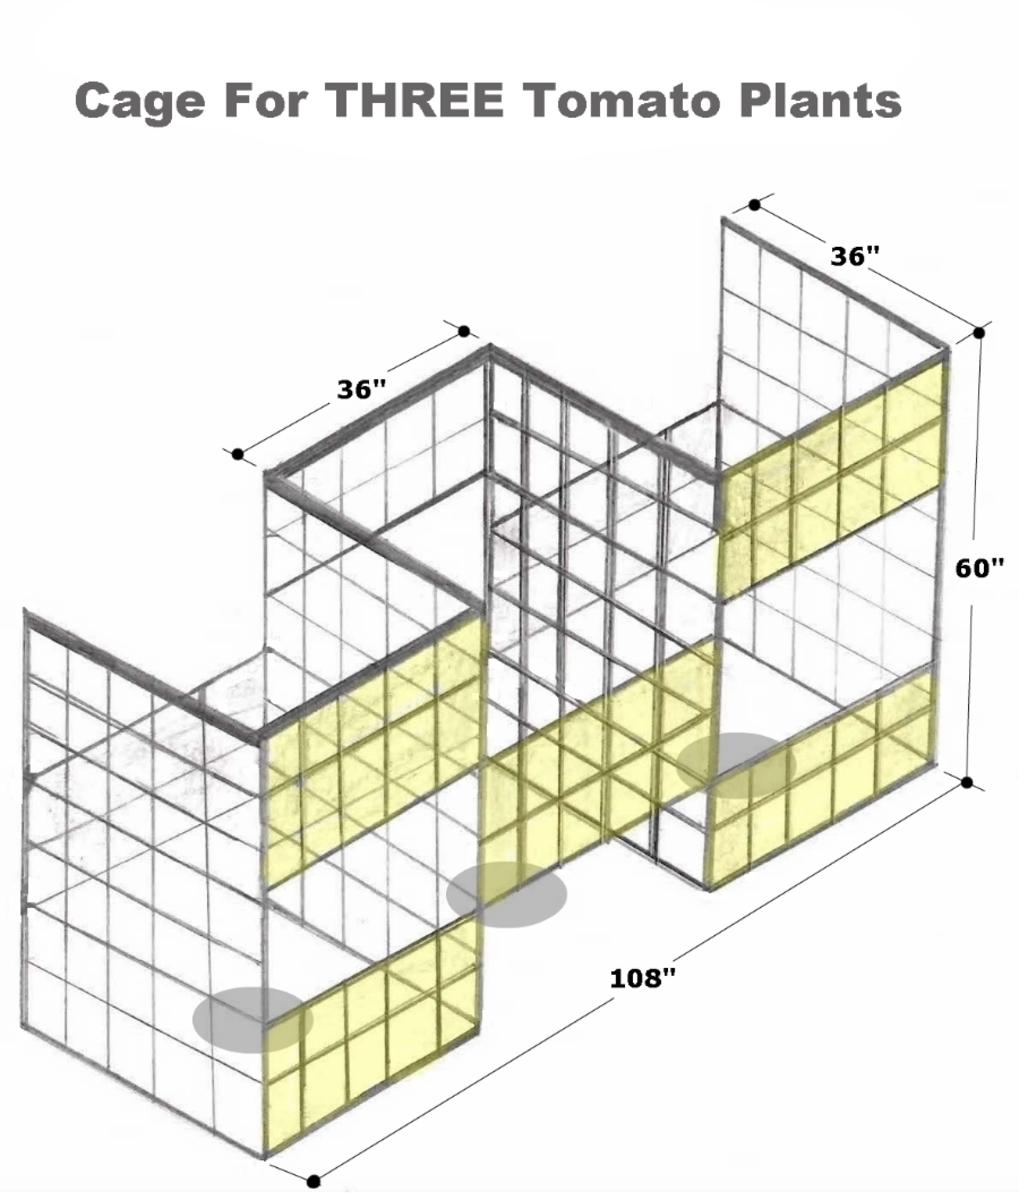 Drawing by Robert Kernodle of a homemade three-compartment tomato cage.